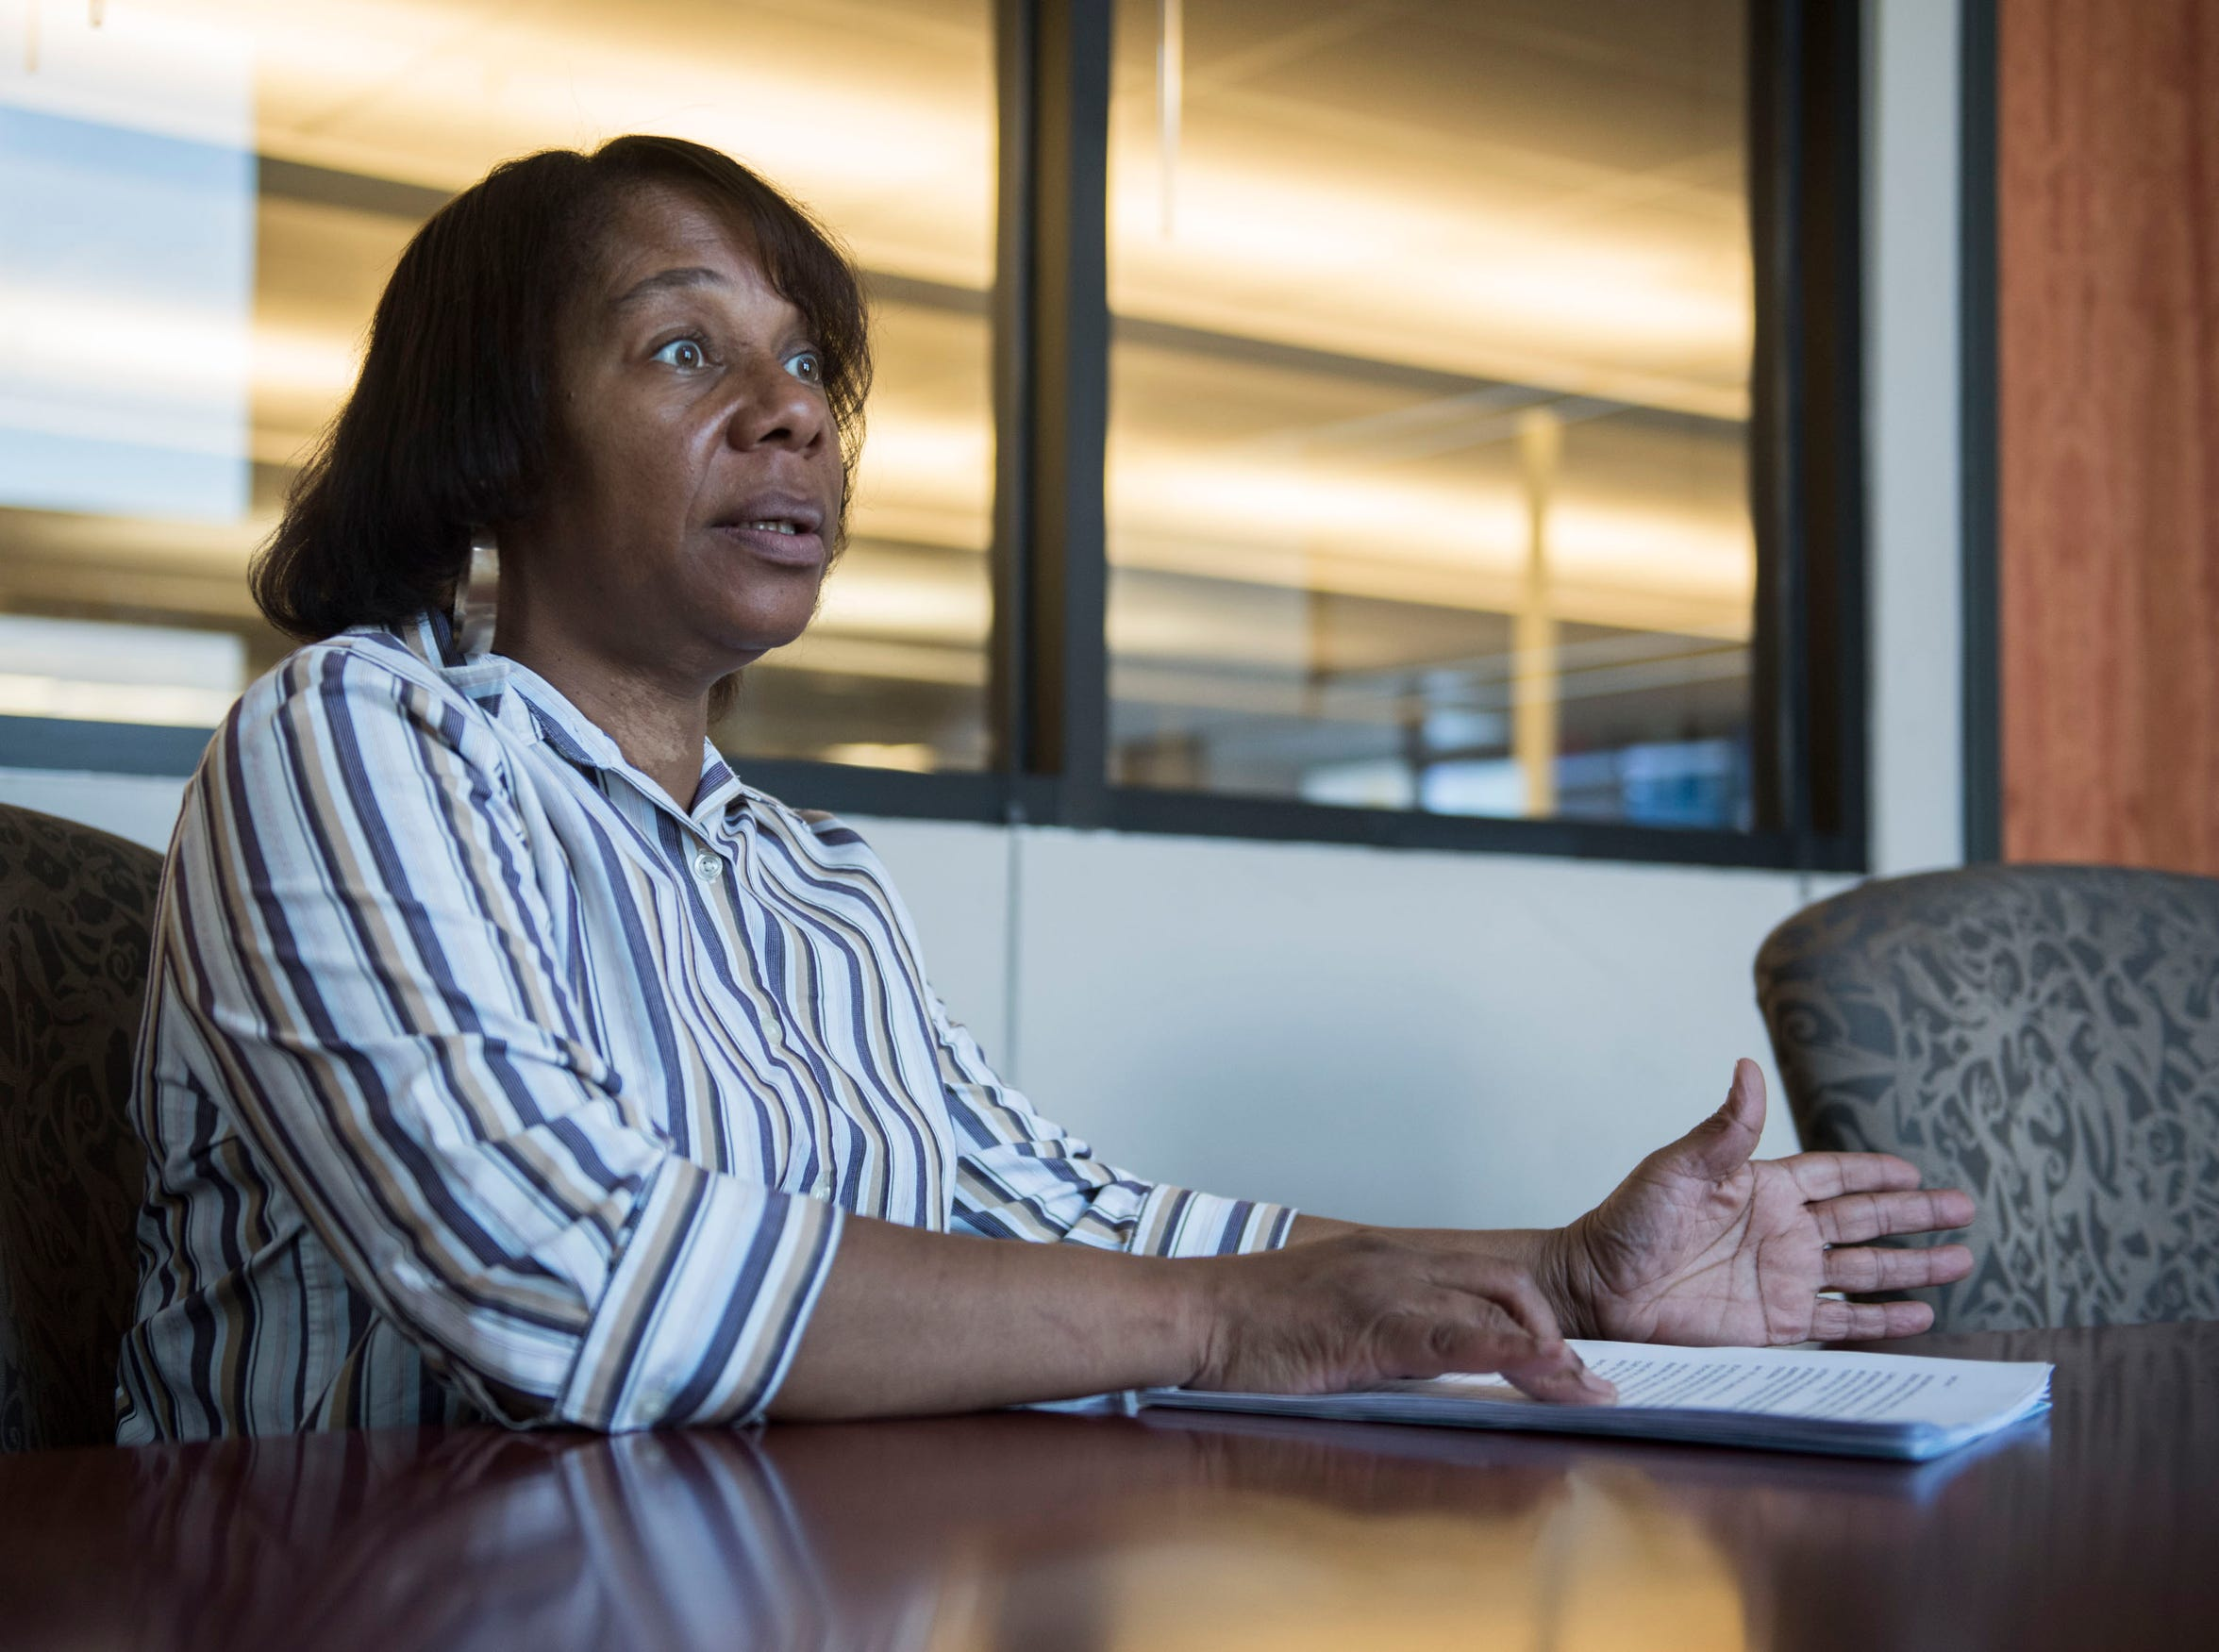 Patricia Holliday June, candidate for city council district 3, is interviewed in Montgomery, Ala., on Wednesday, March 20, 2019.